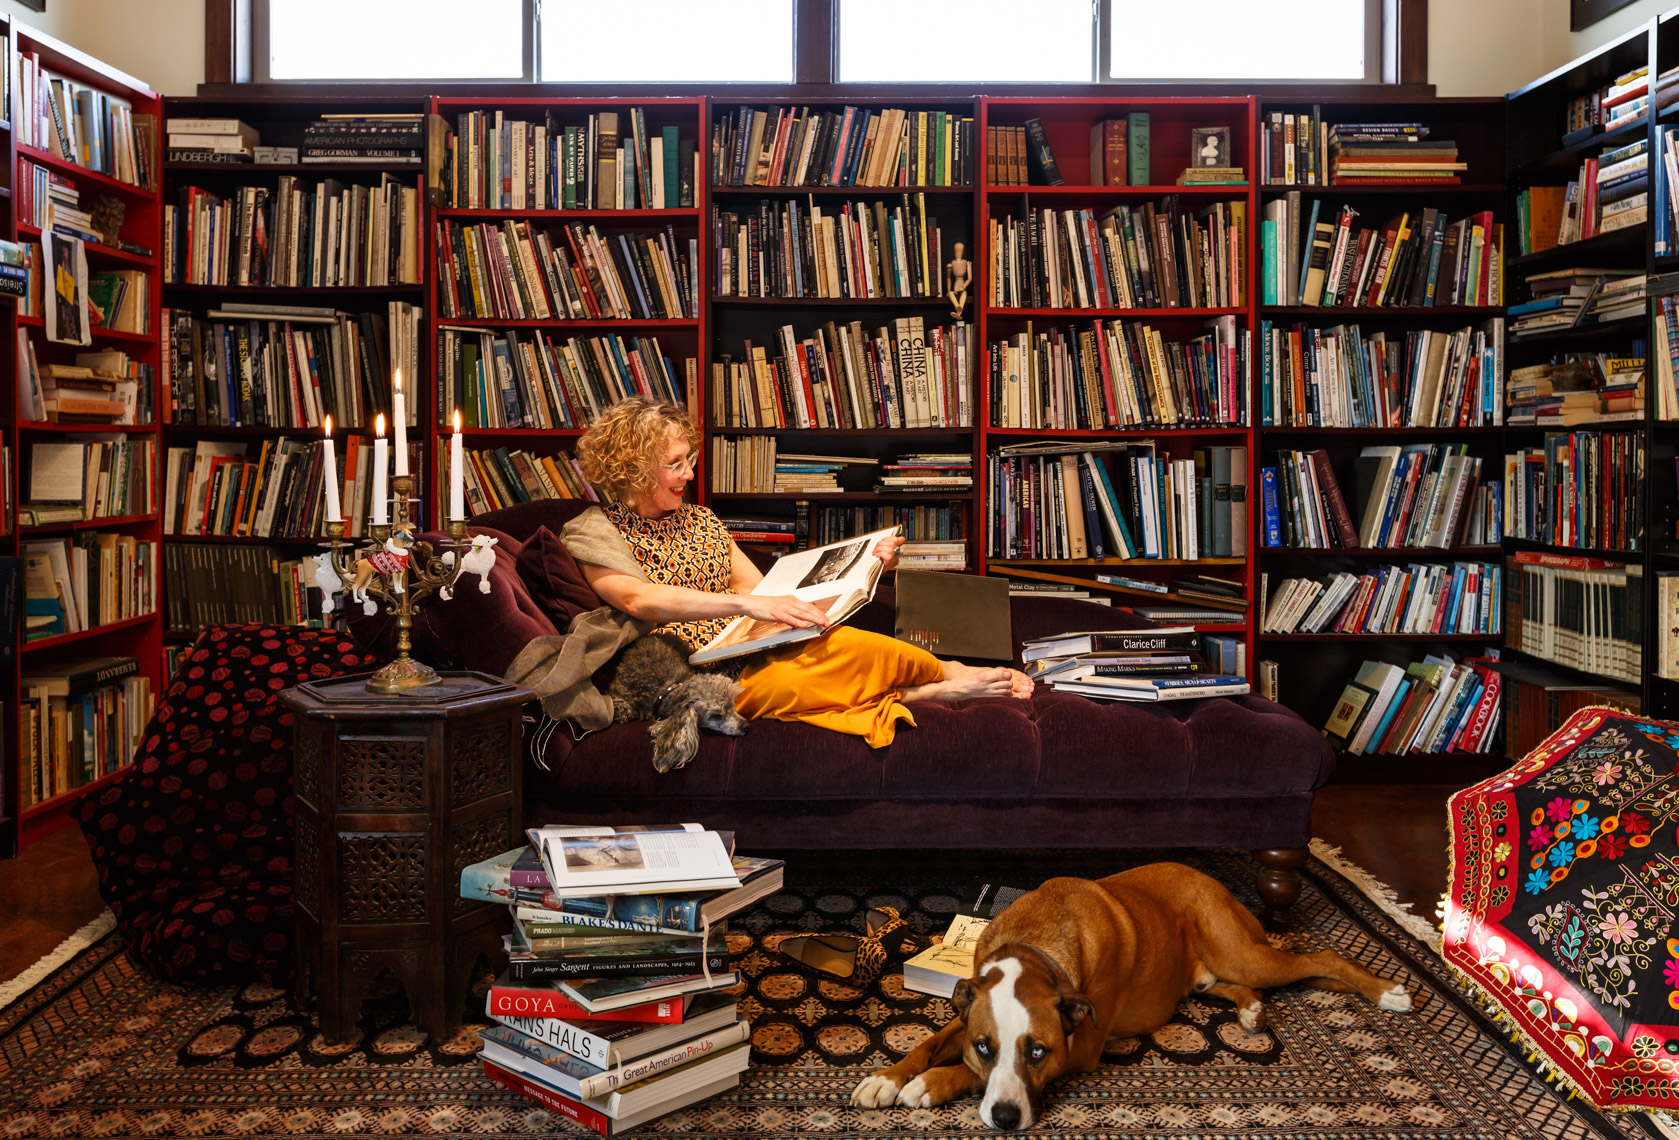 Happy, smiling, creative middle aged woman with her pet dogs relaxing reading a book in her unique home library interior